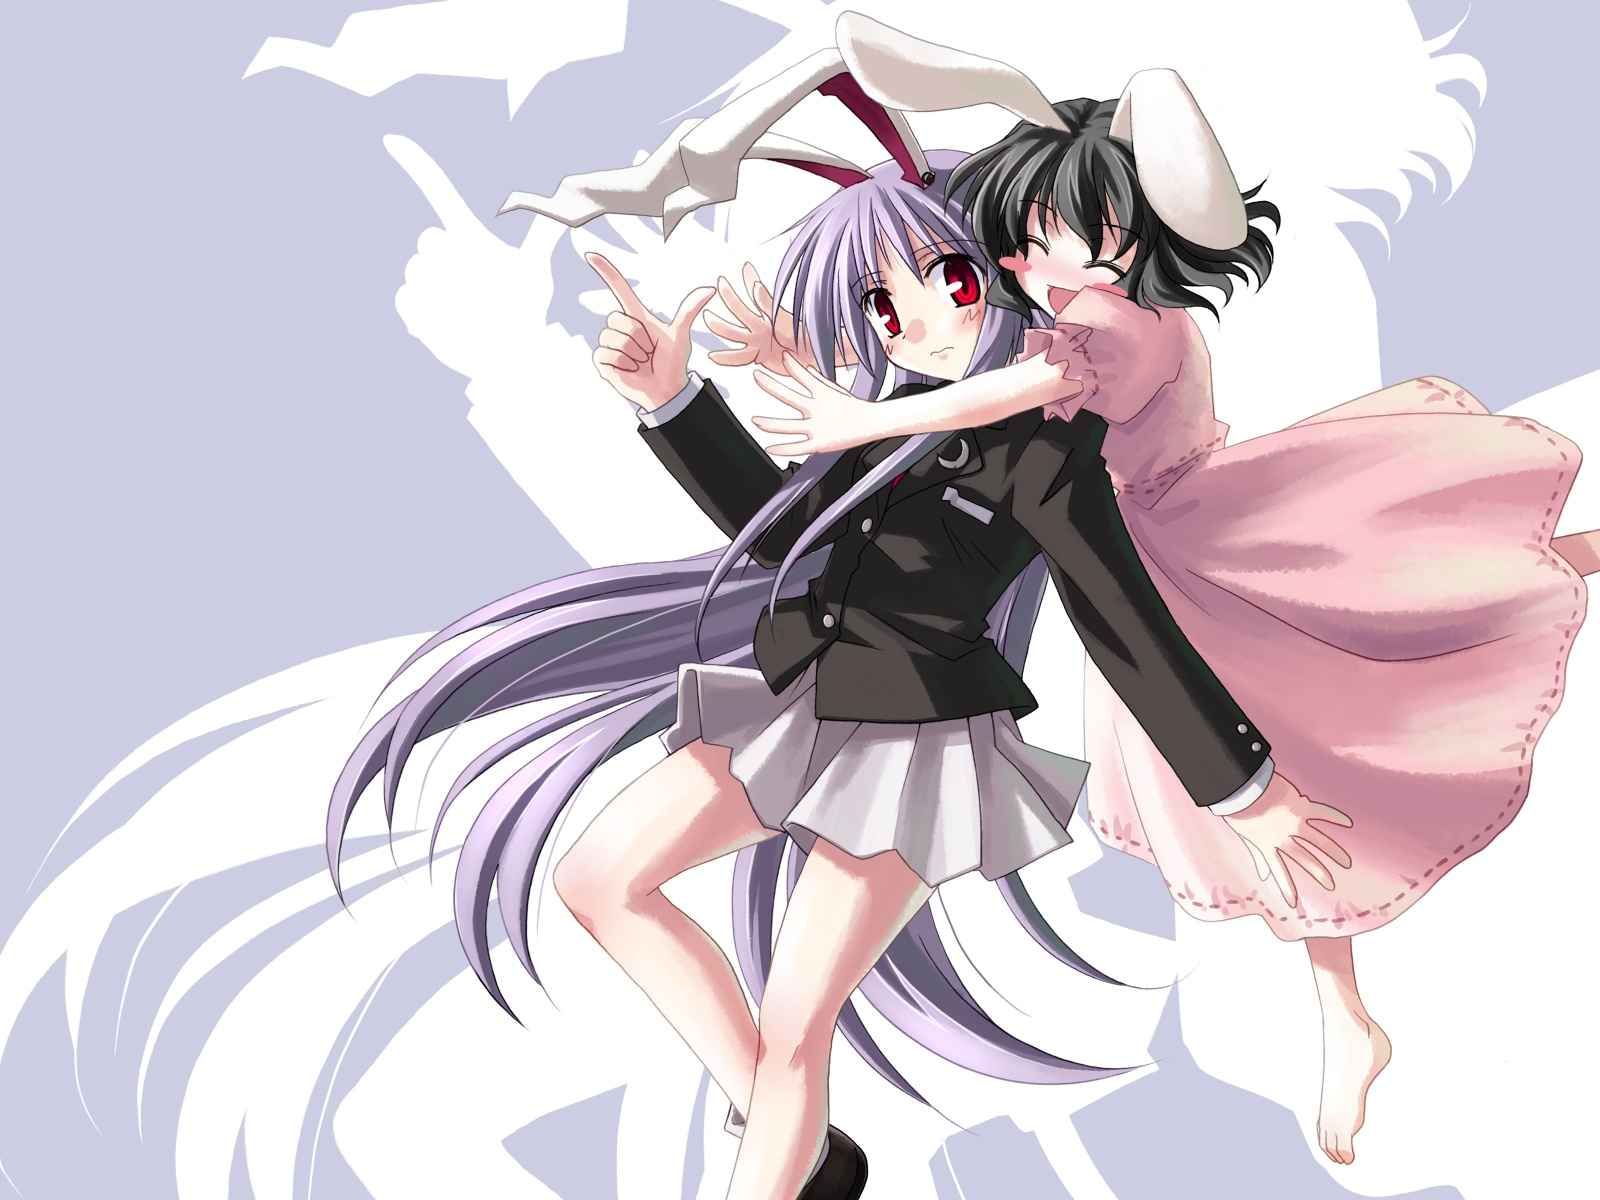 touhou animal ears reisen HD Wallpaper